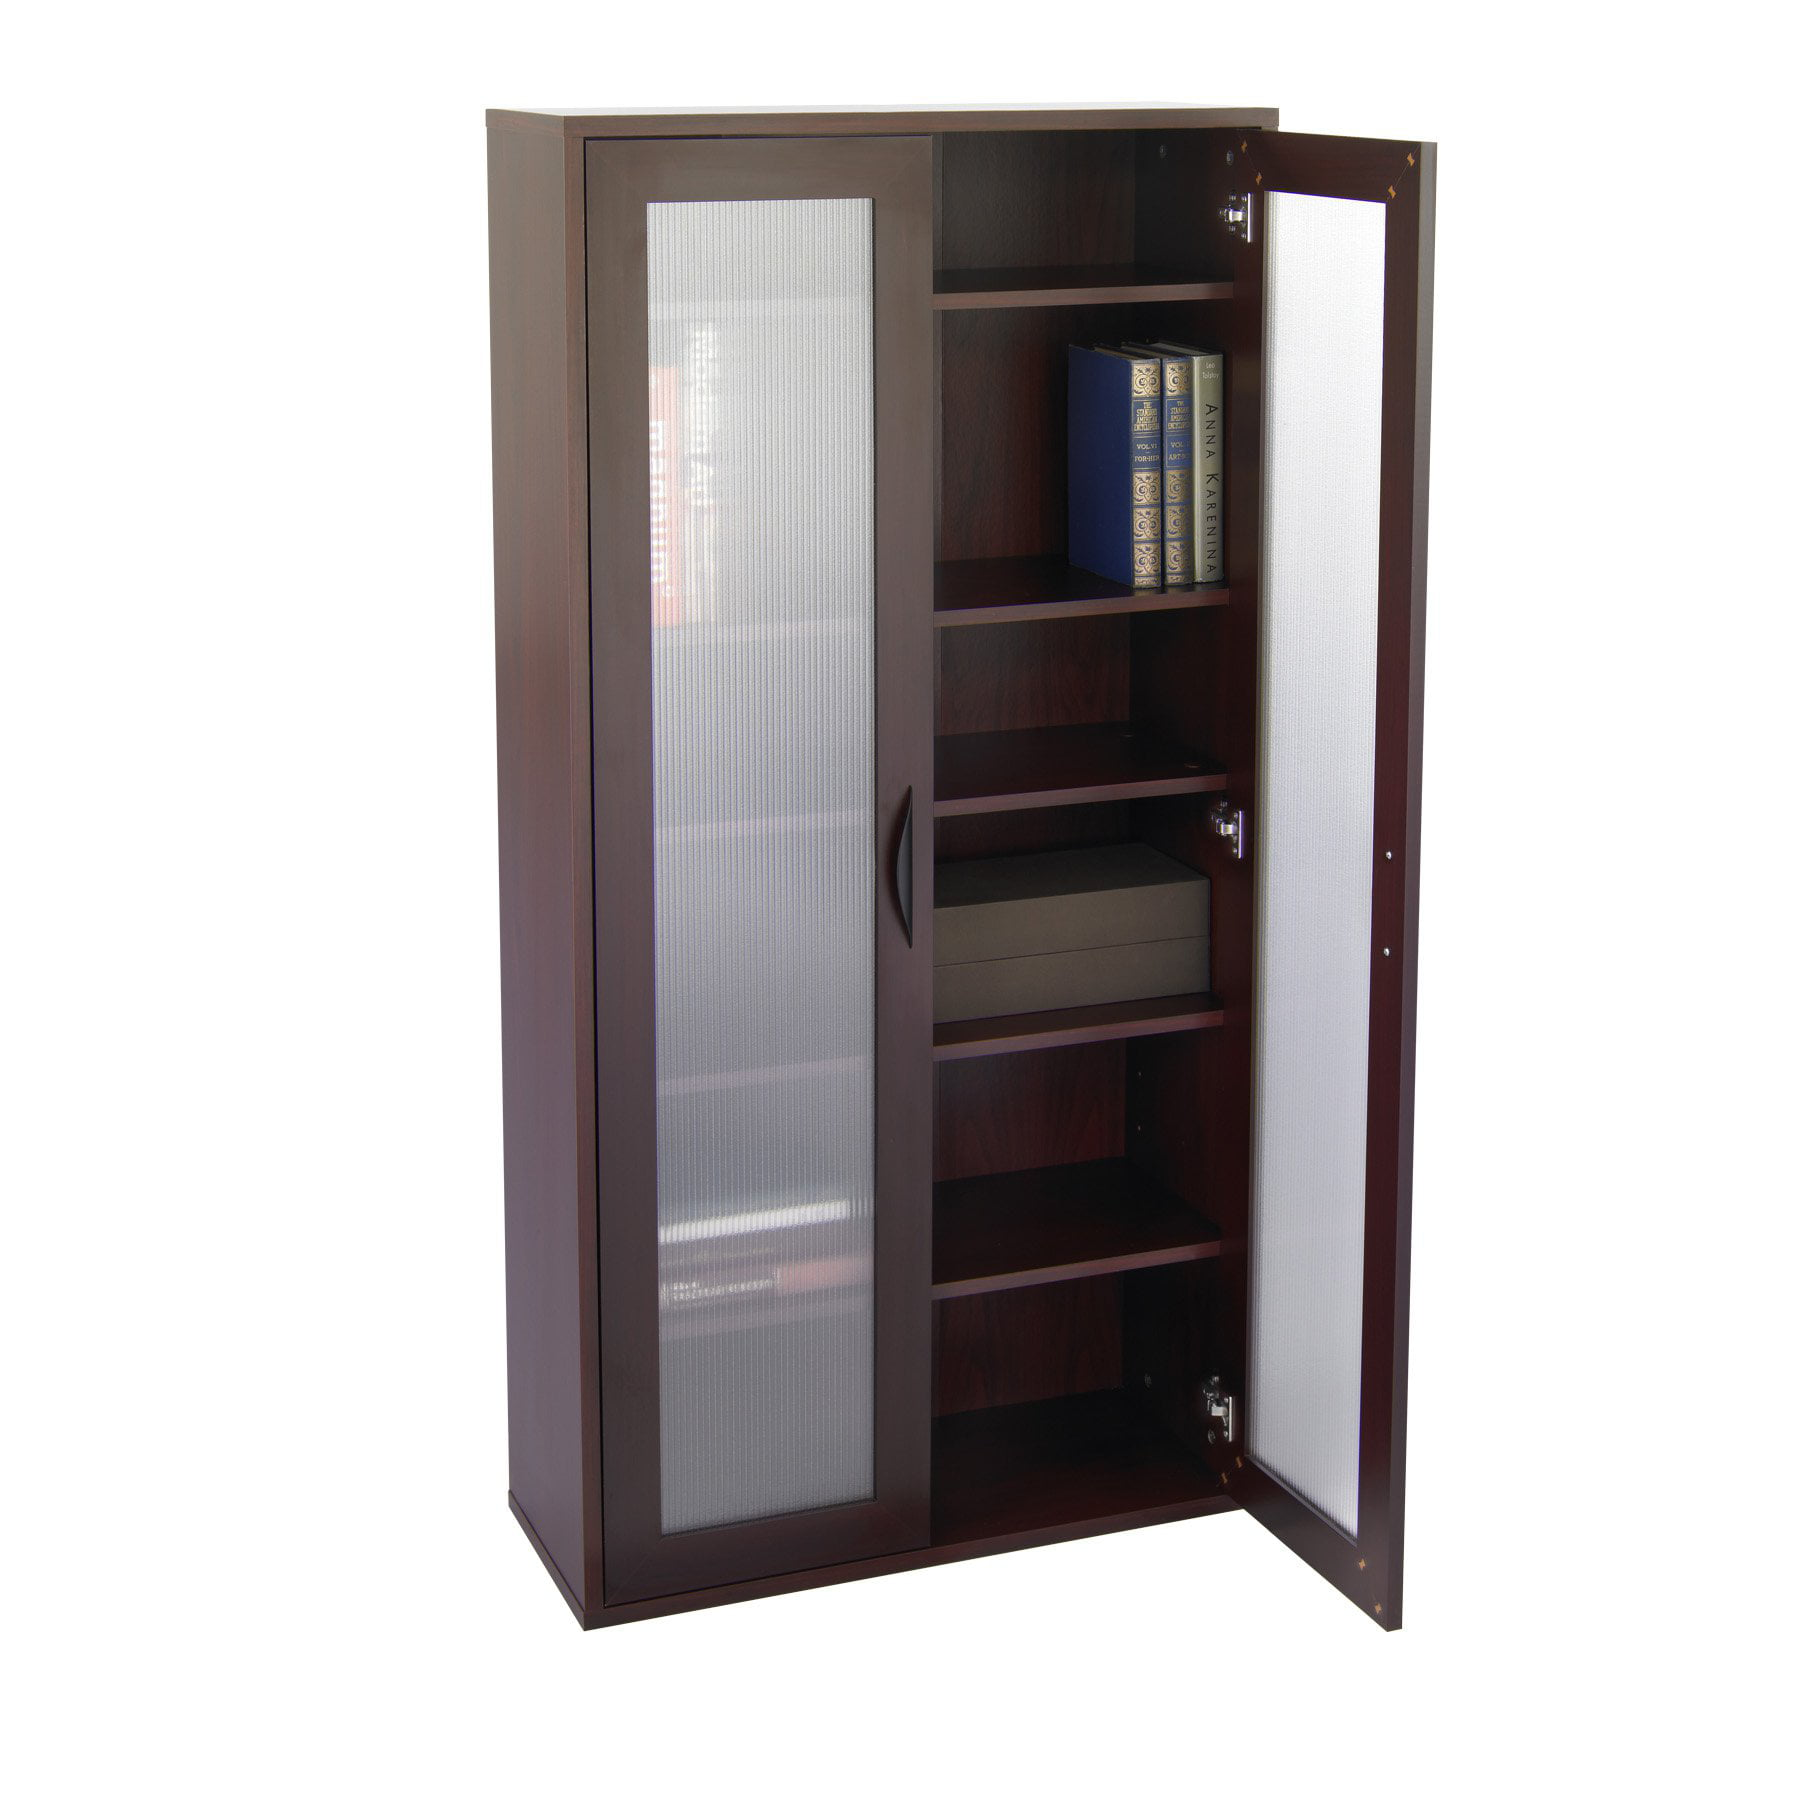 Merveilleux Storage Bookcase With Glass Doors Tall   Mahogany   Walmart.com